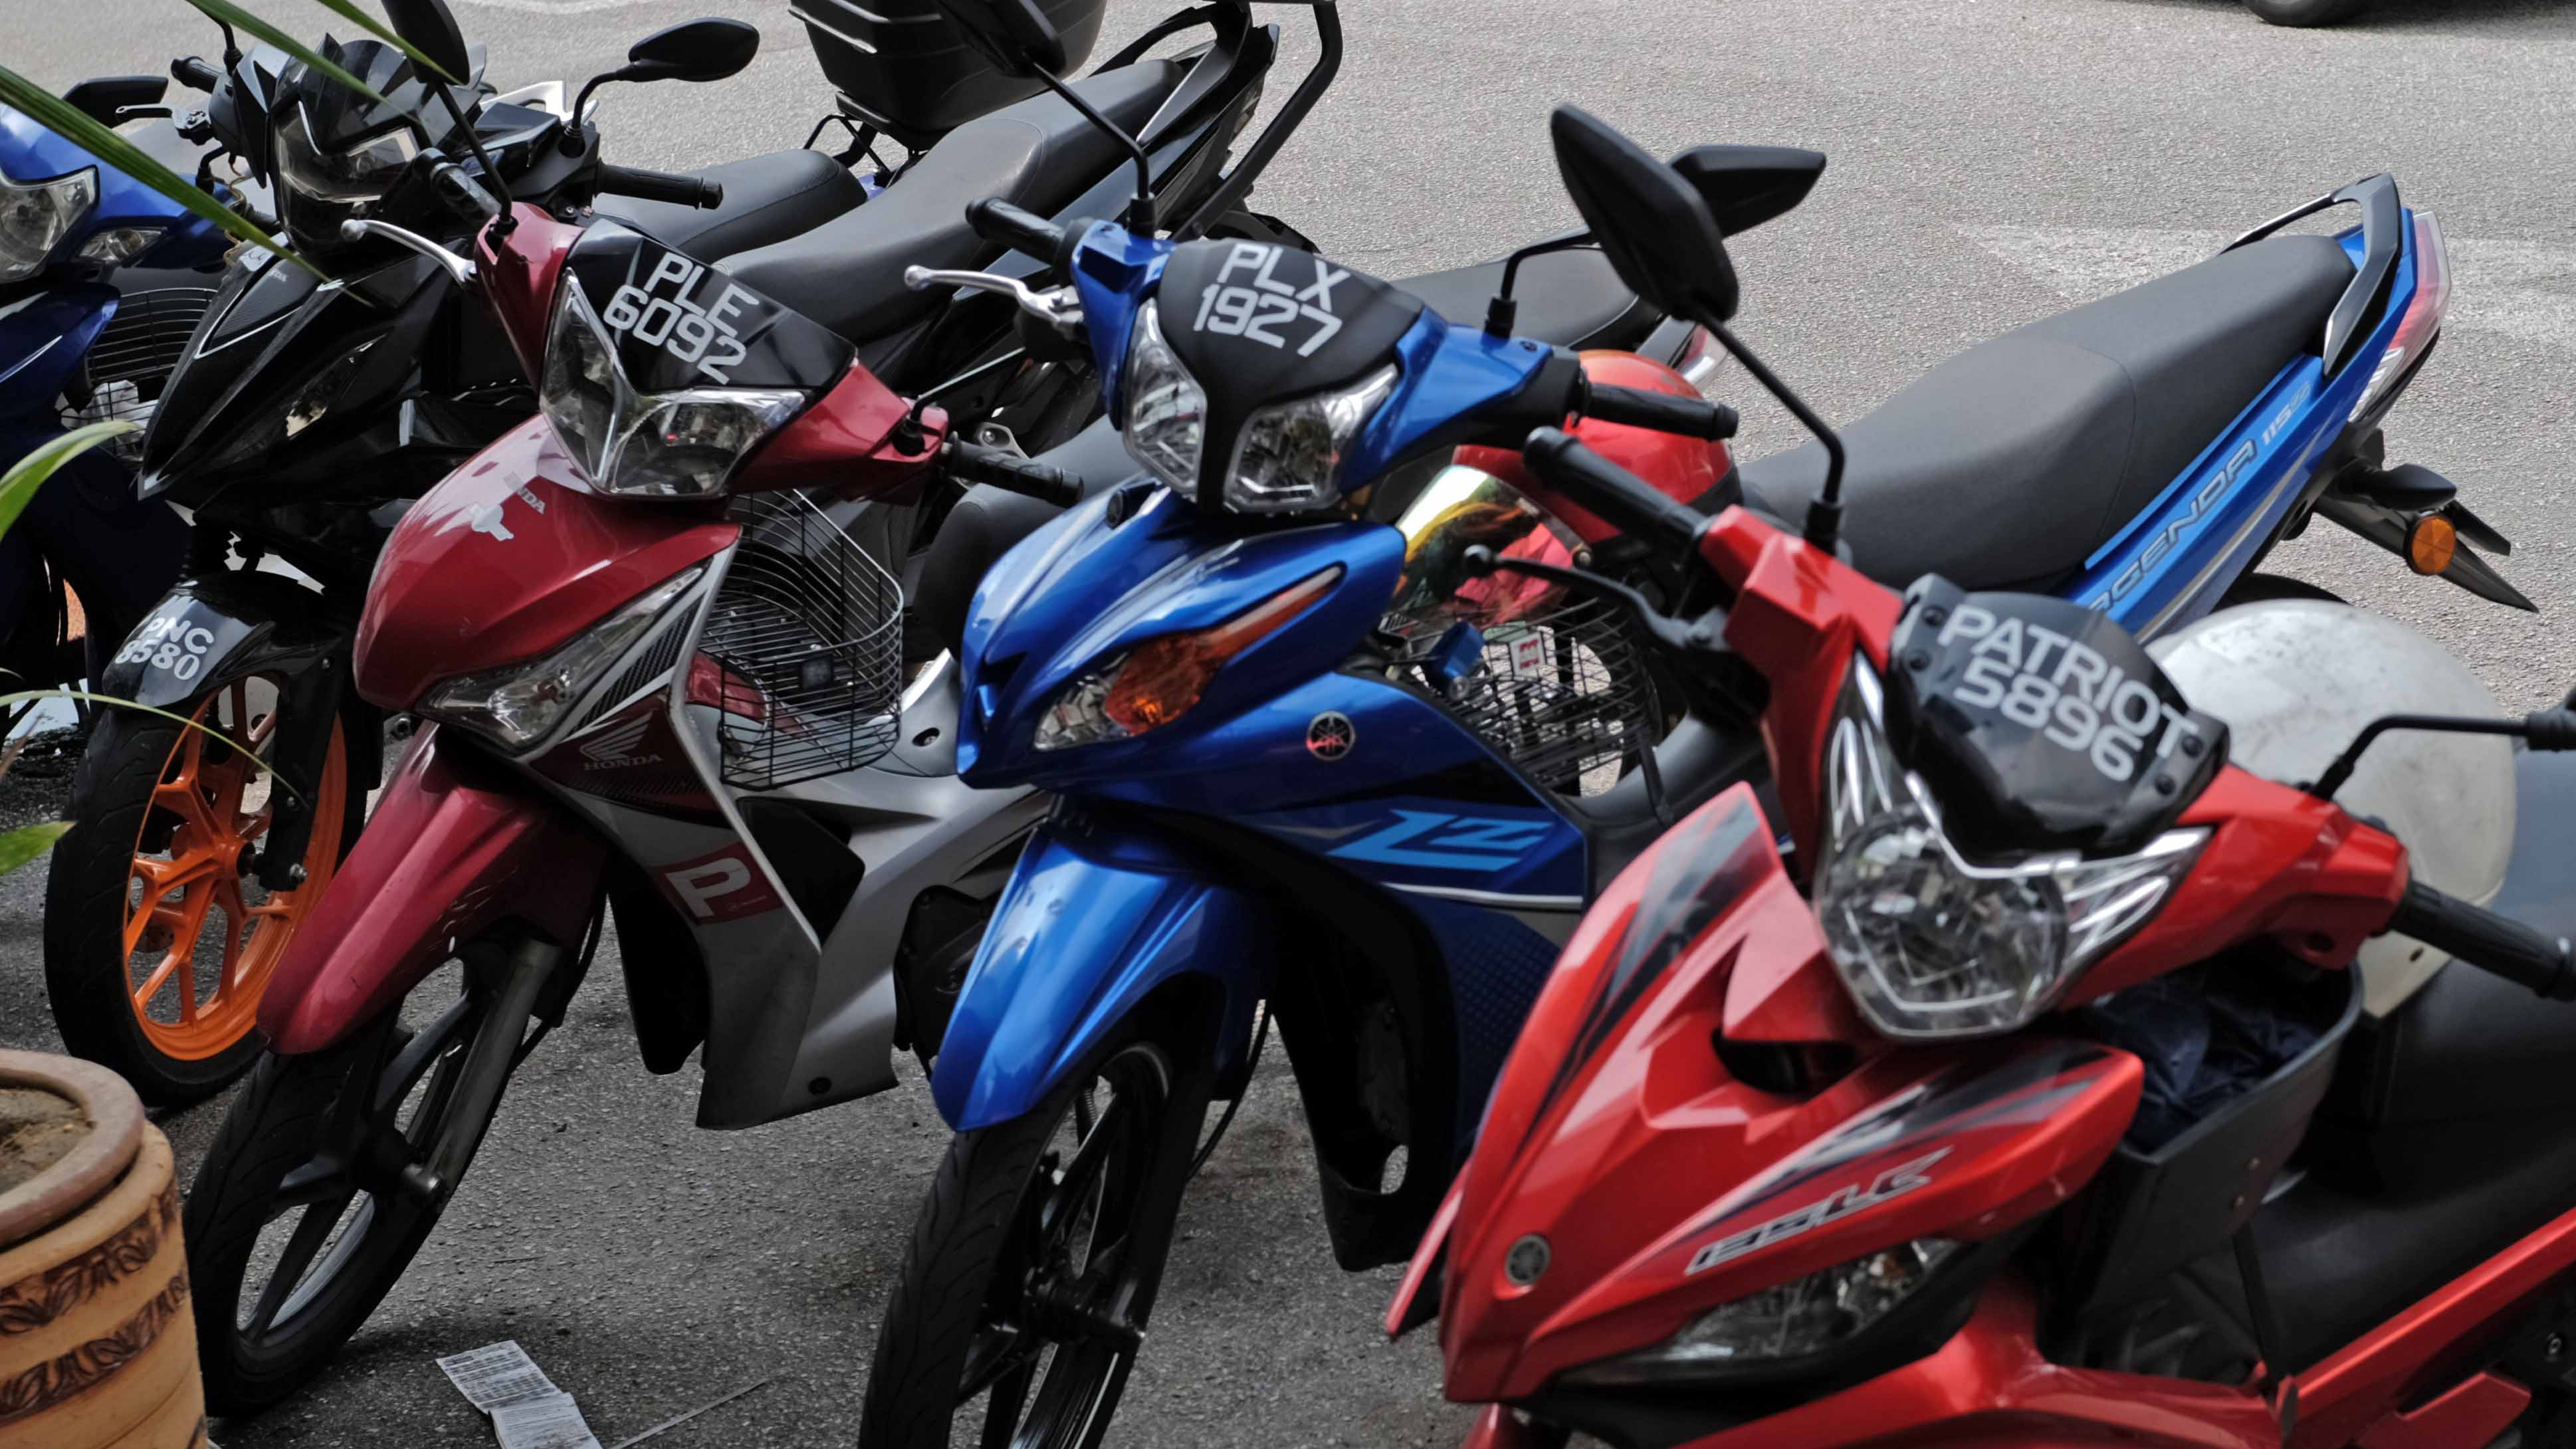 Doble plaka law what front motorcycle license plates in malaysia sg look like